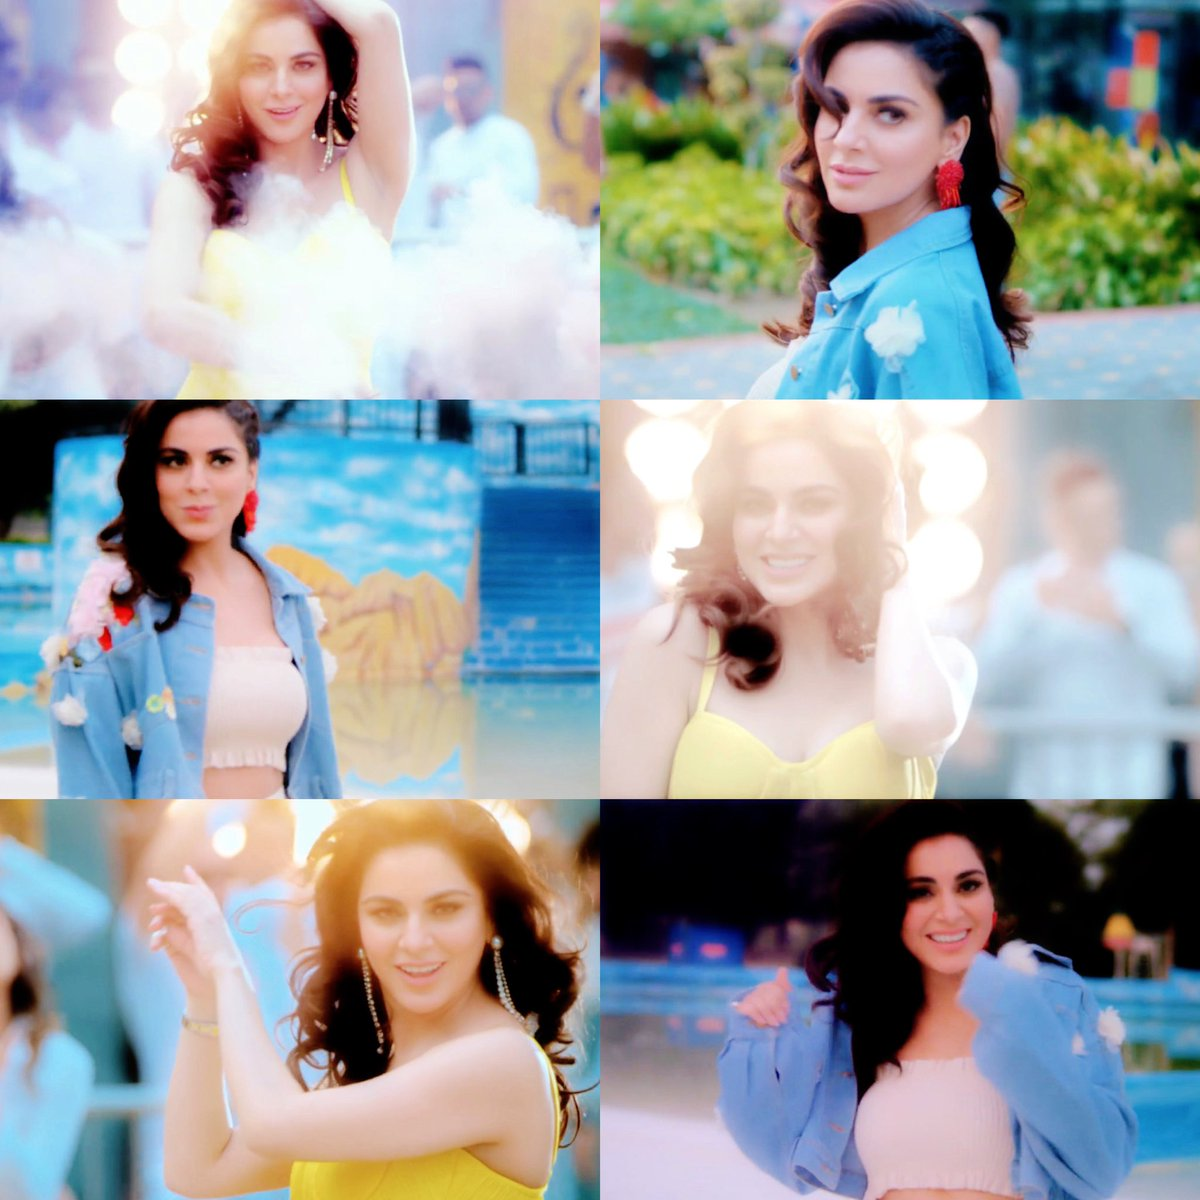 Car Gabru Di! ✨ @AryaSmilesa Your expressions the fab 😍 Loved you here! ♥️ The song sounds very cool too ✌🏻Love you 😘 #ShraddhaArya